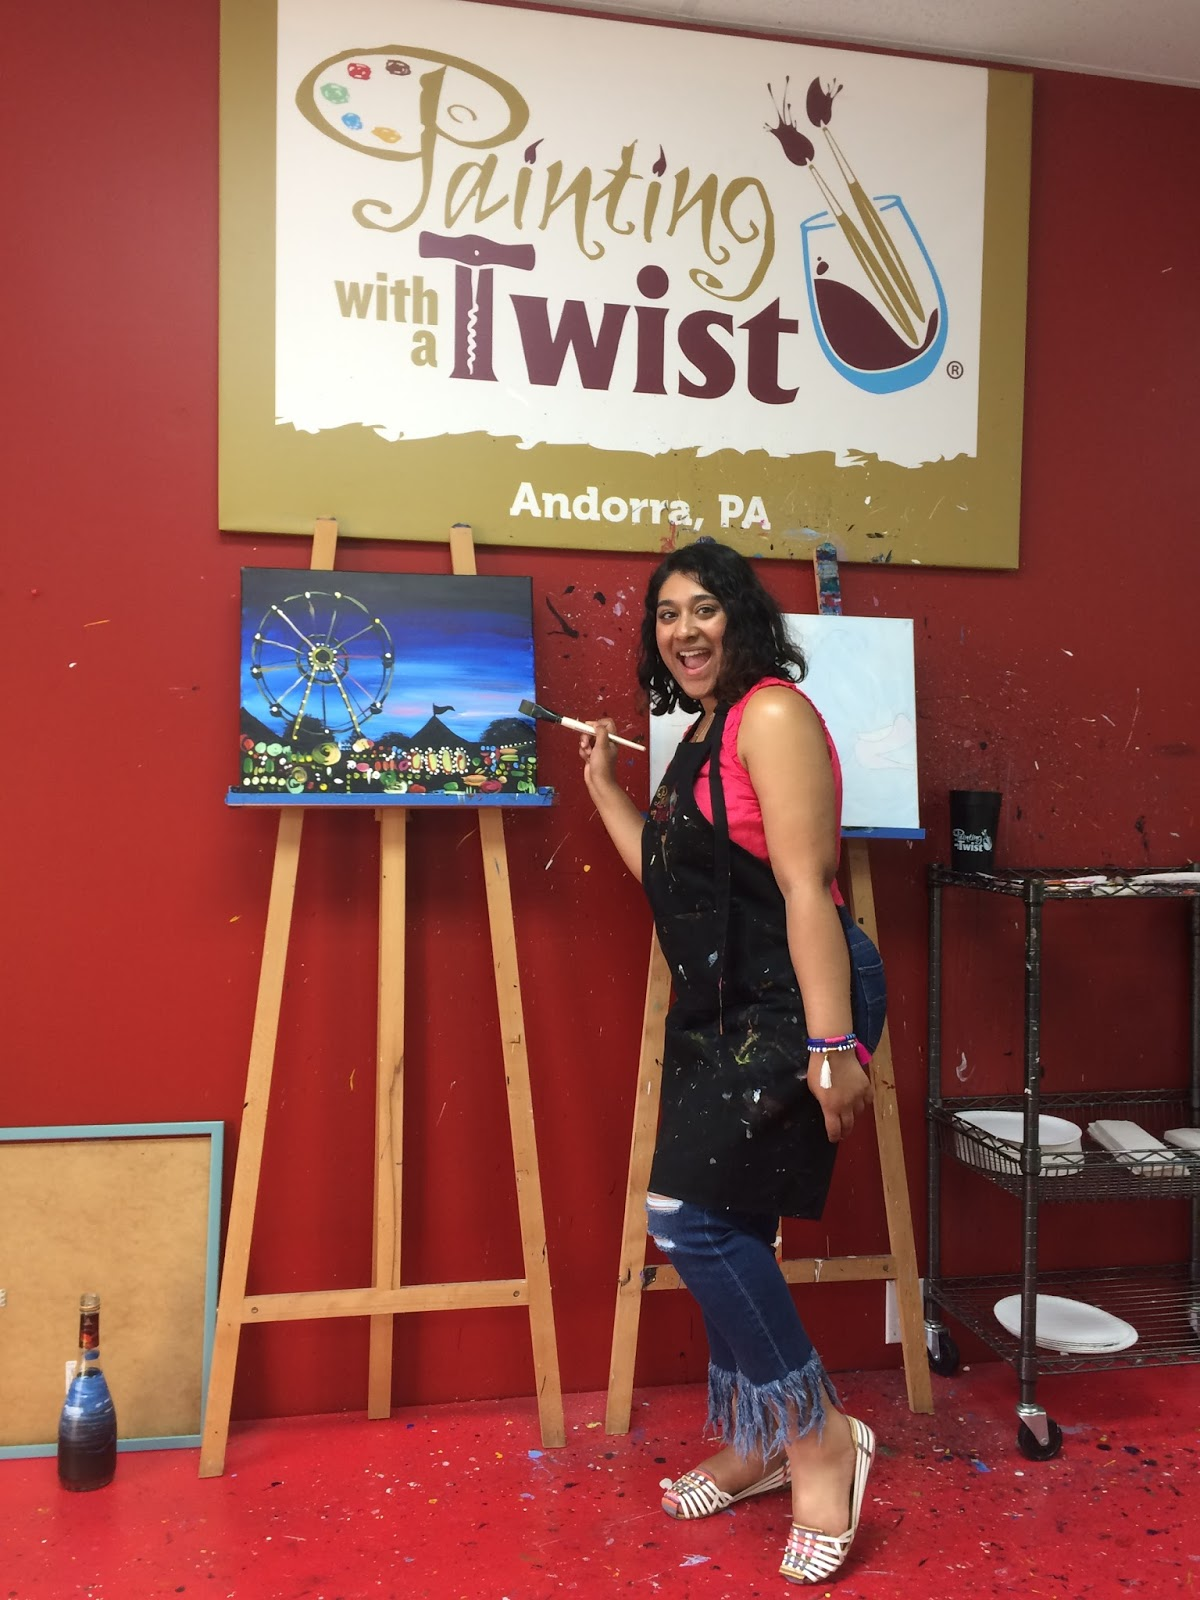 painting with a twist andorra